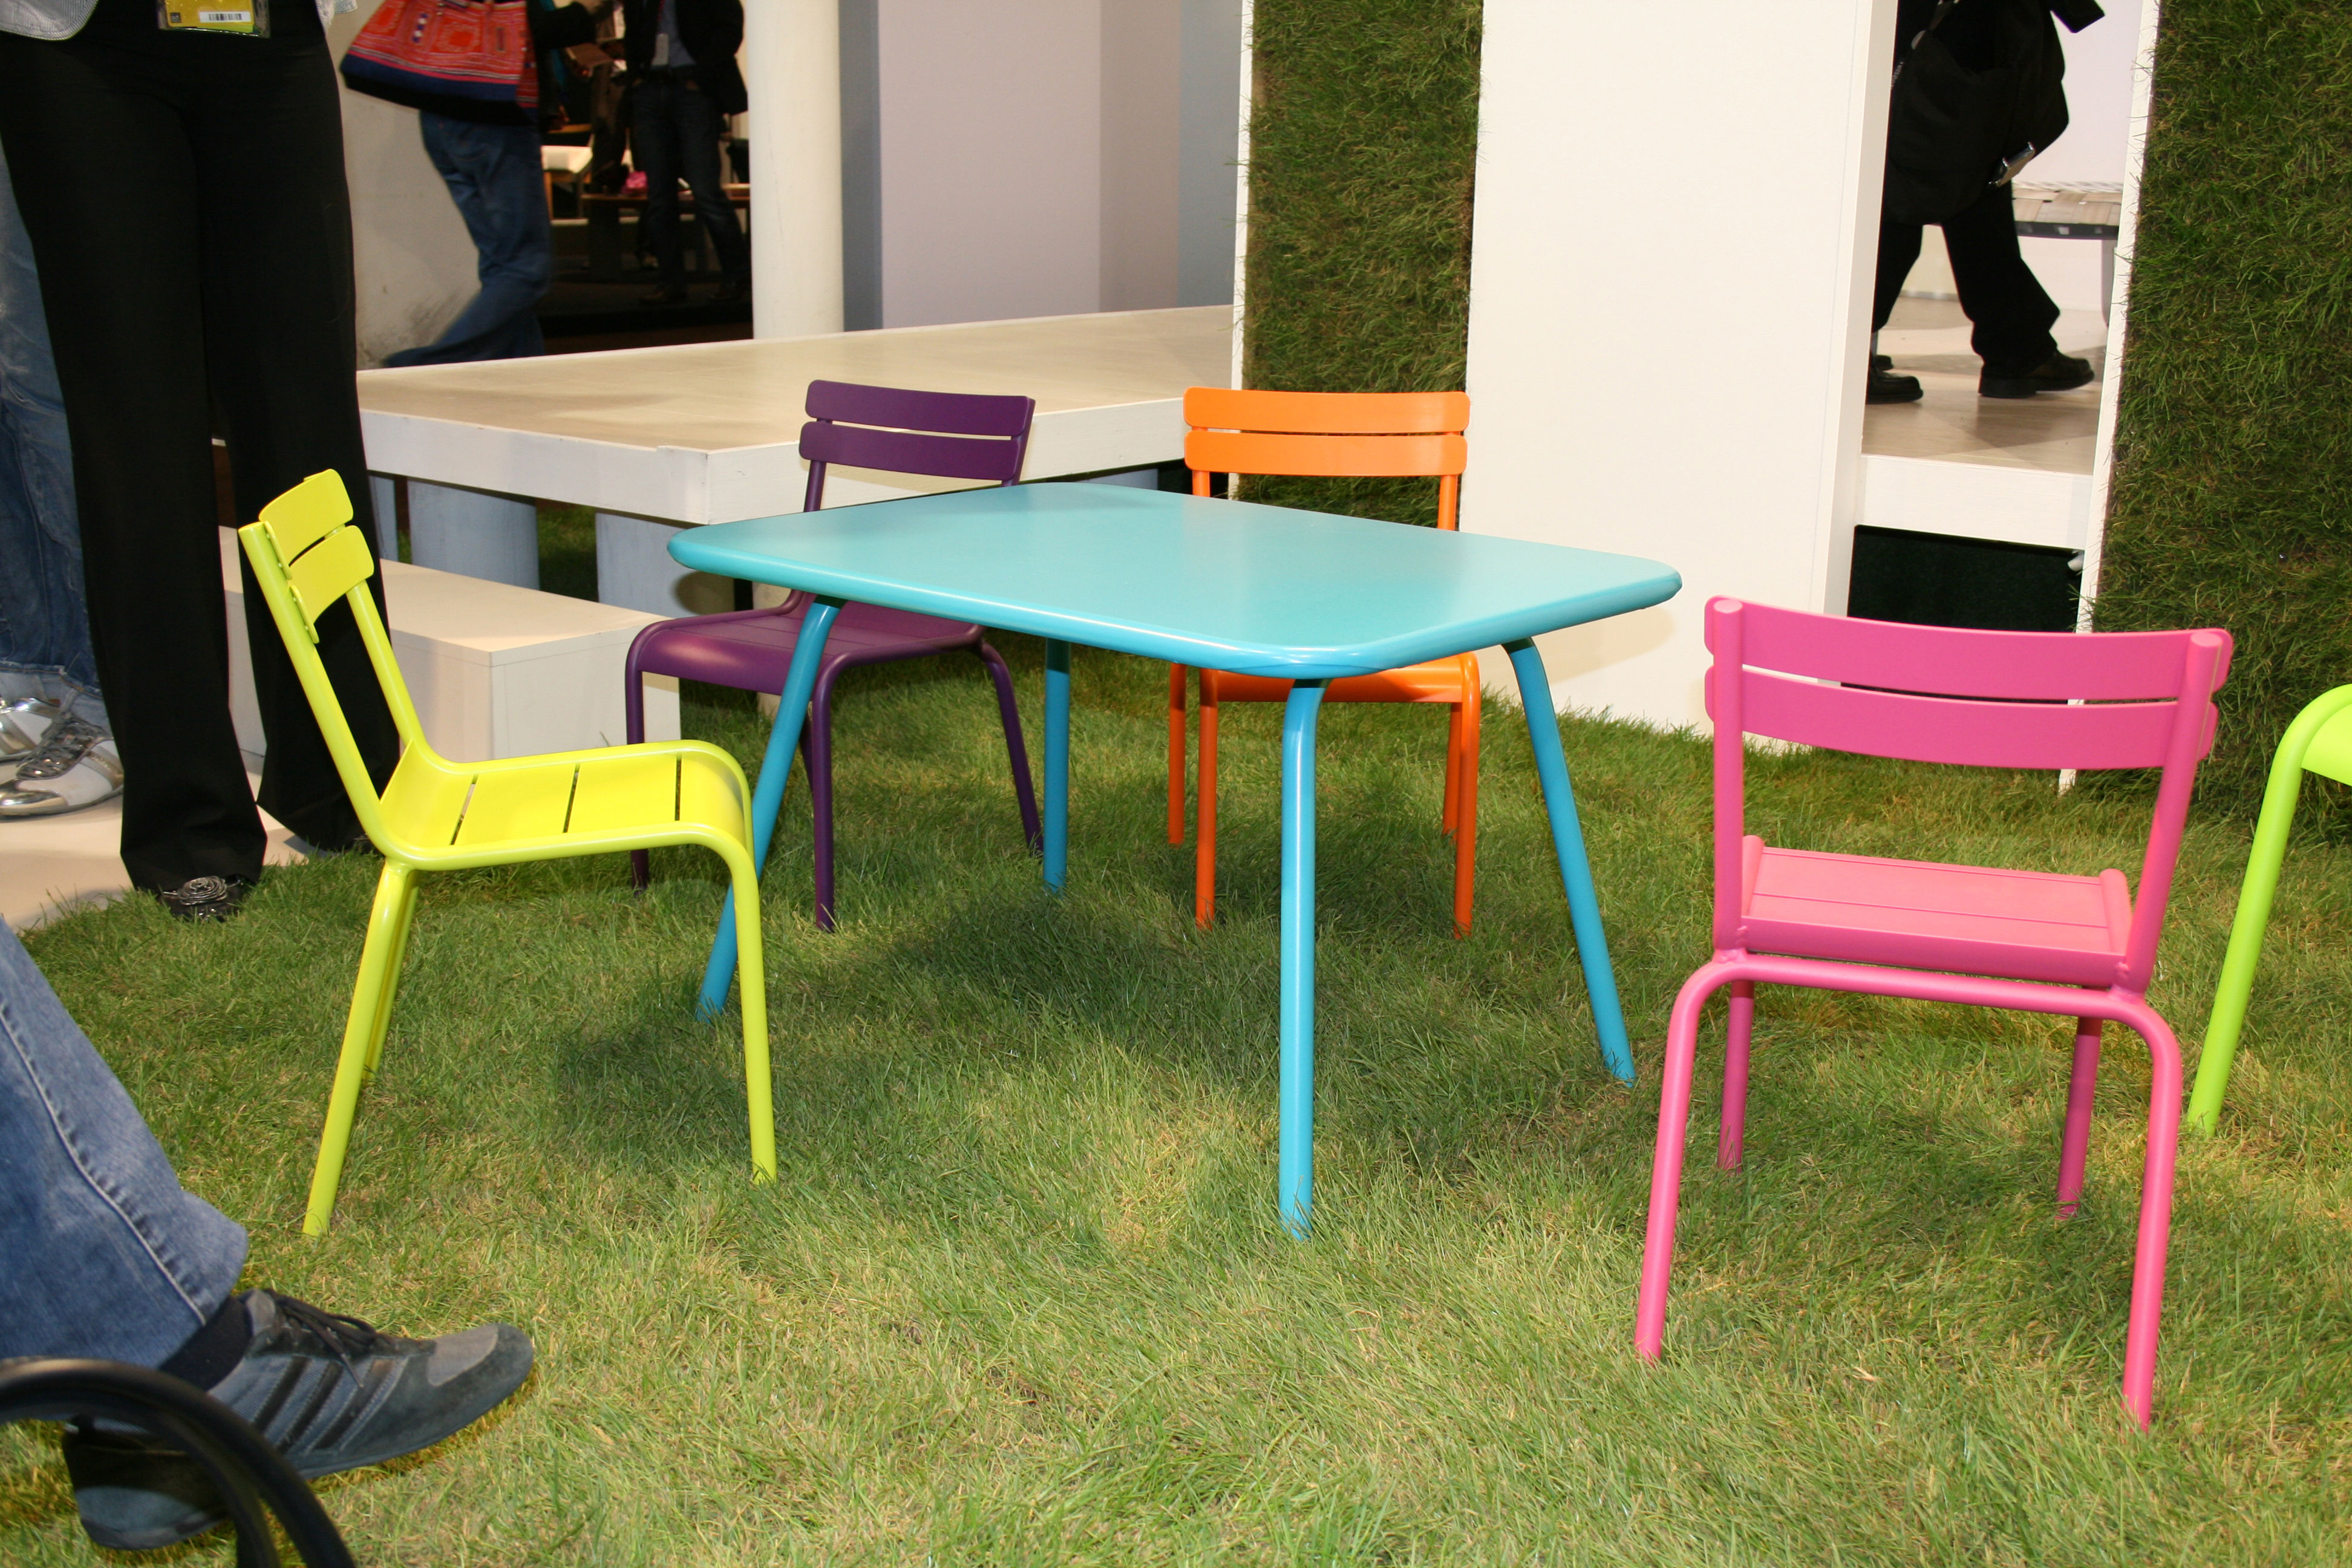 Luxembourg Kid Kinderstuhl Türkis by Fermob | Made In Design